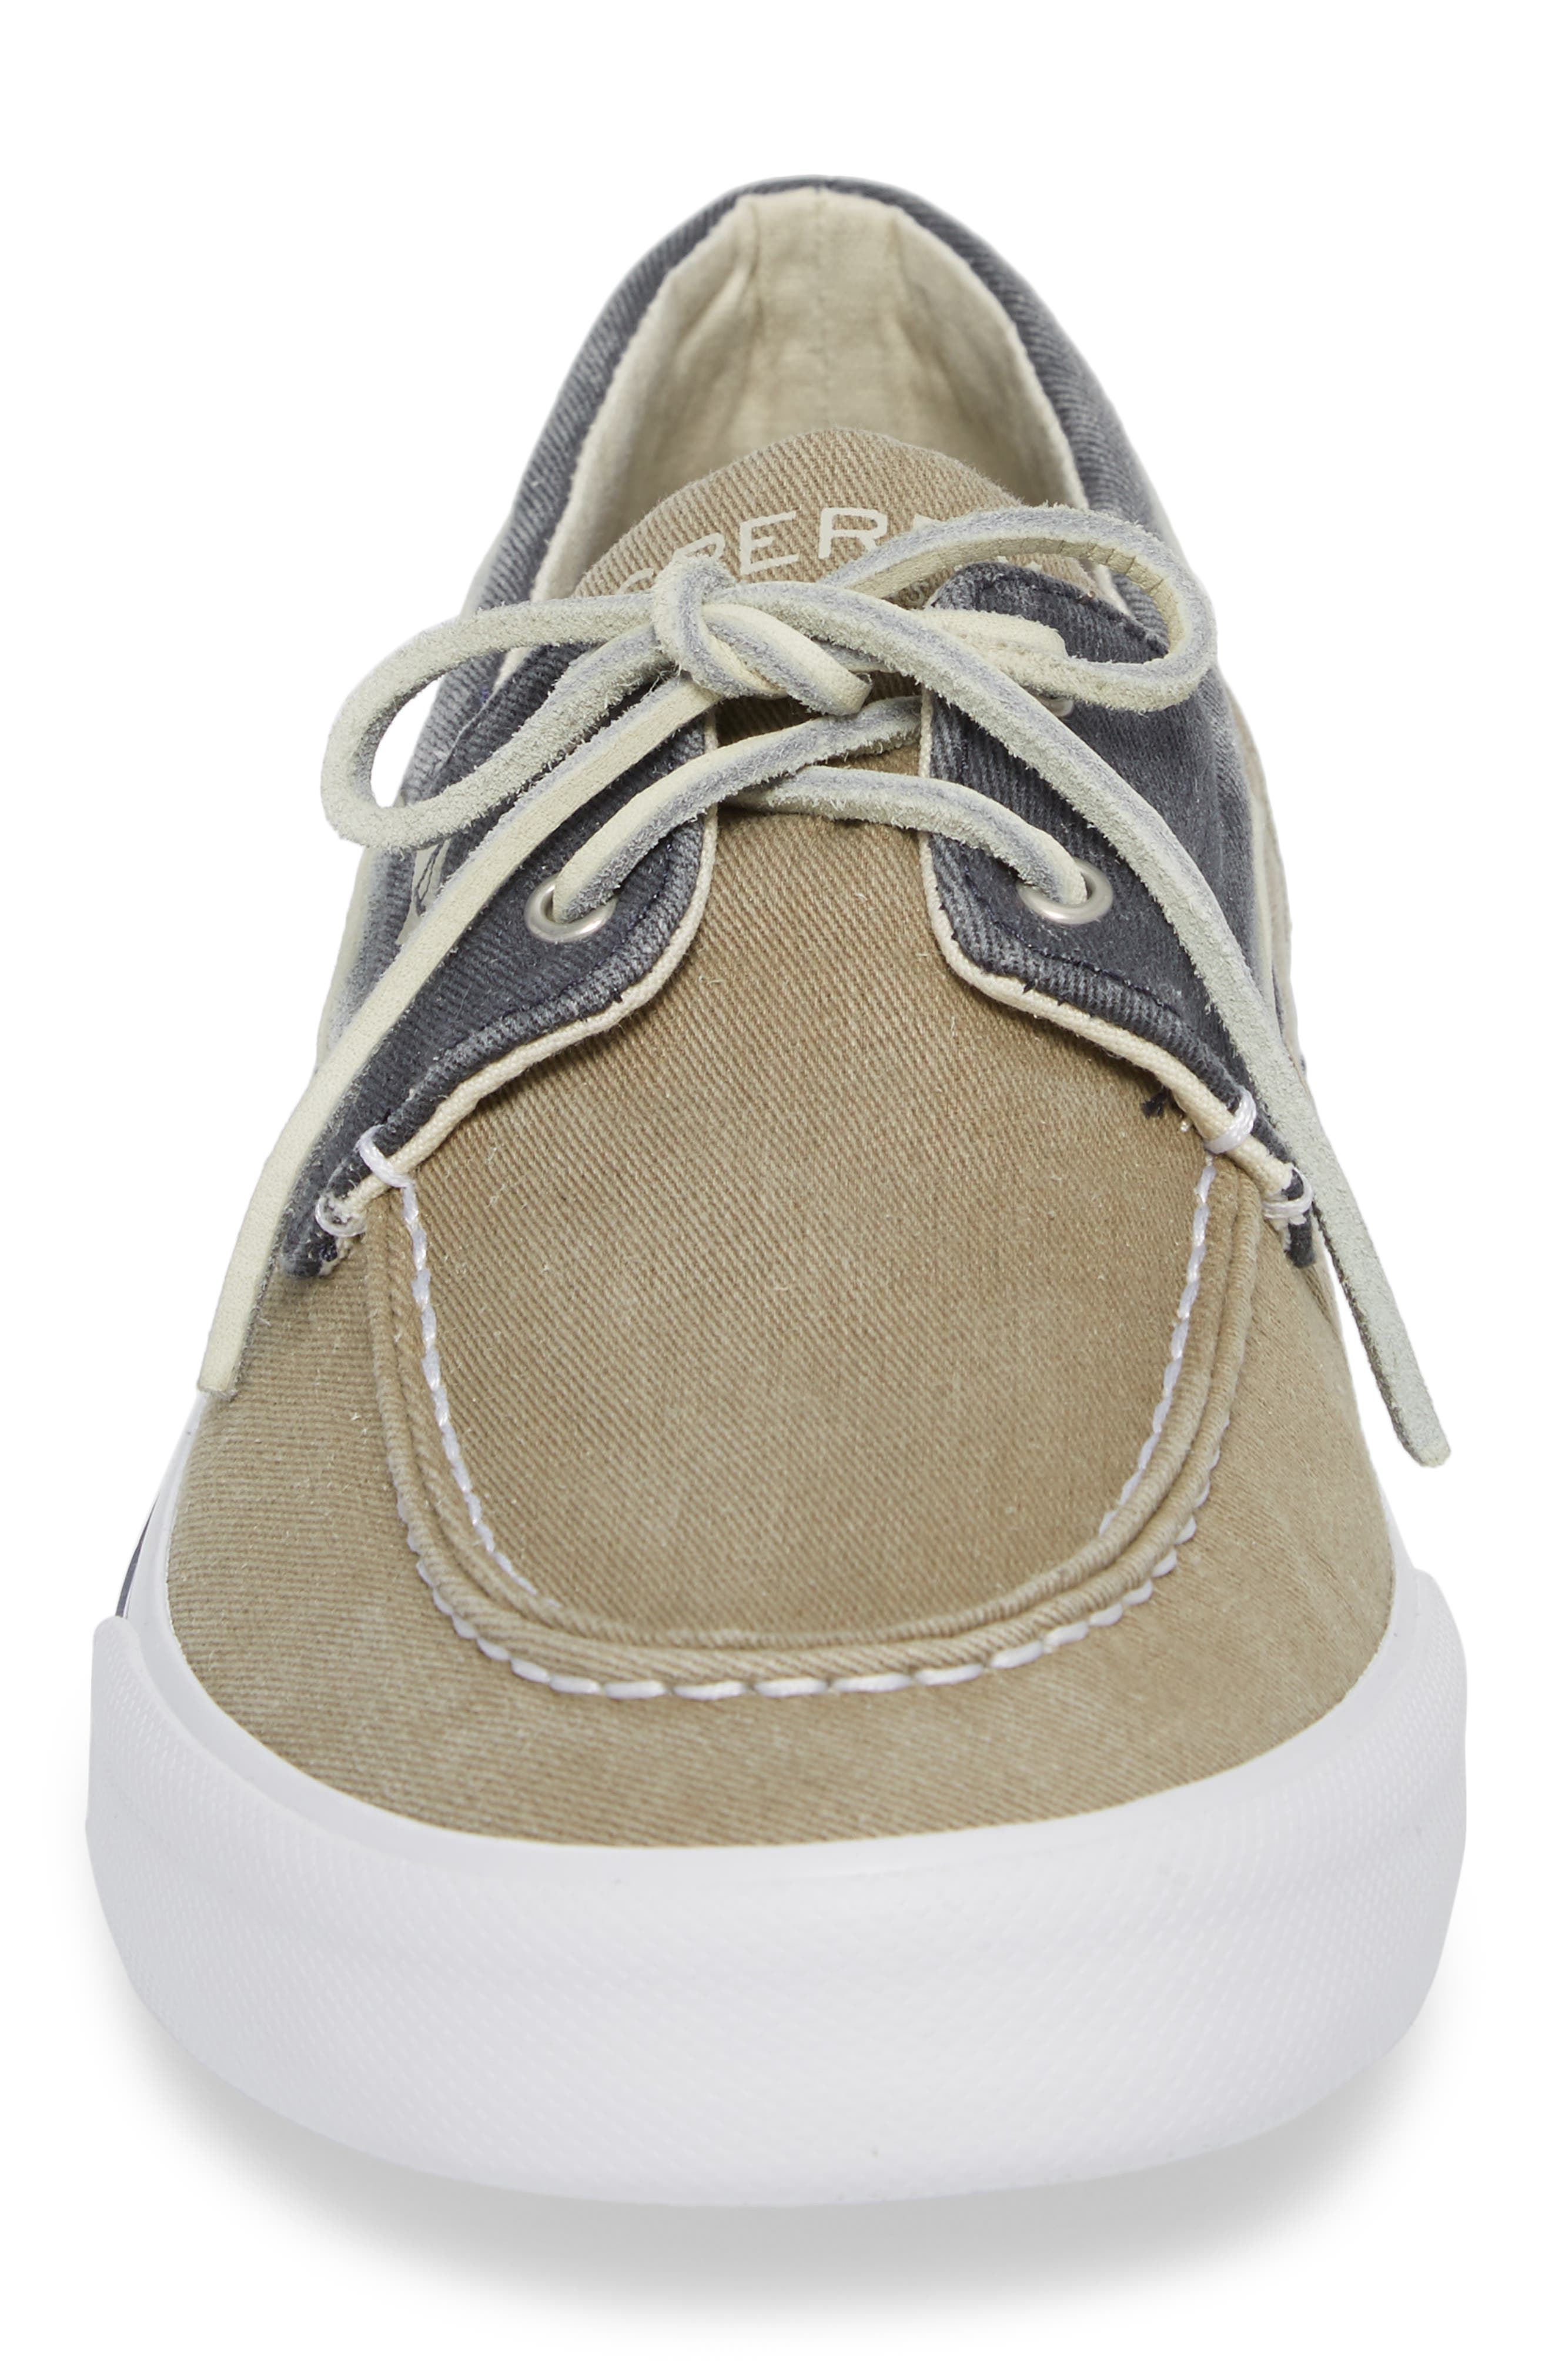 Striper II Boat Shoe,                             Alternate thumbnail 4, color,                             Taupe/ Navy